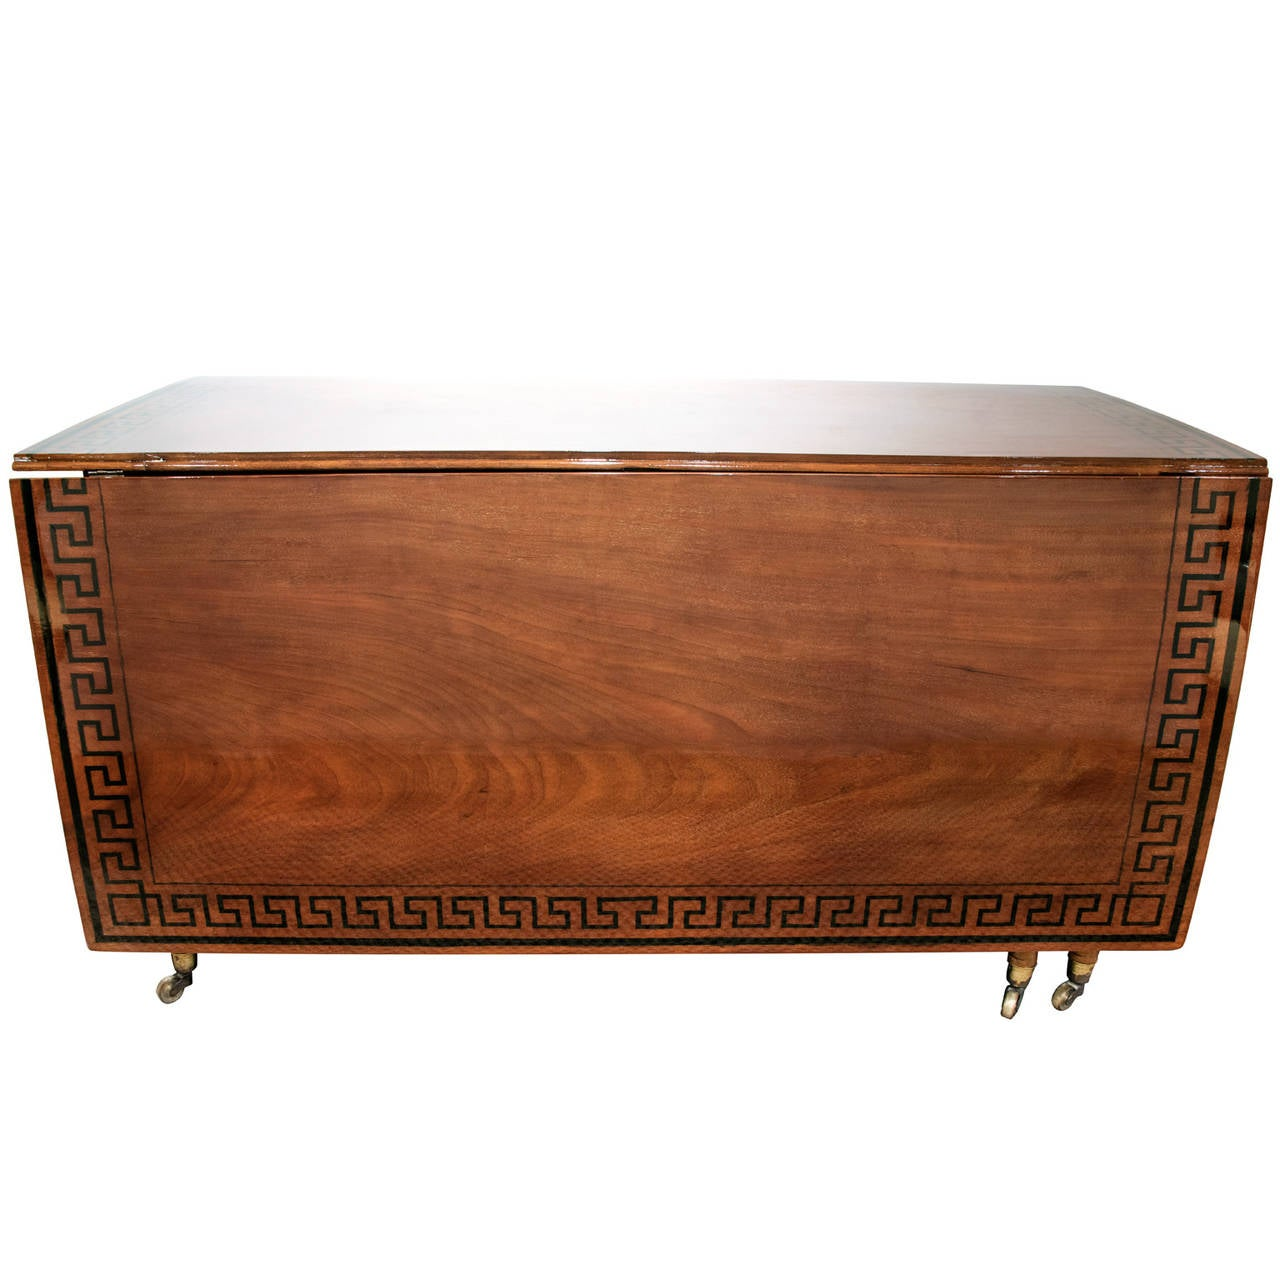 Regency Mahogany Drop-Leaf Table 2